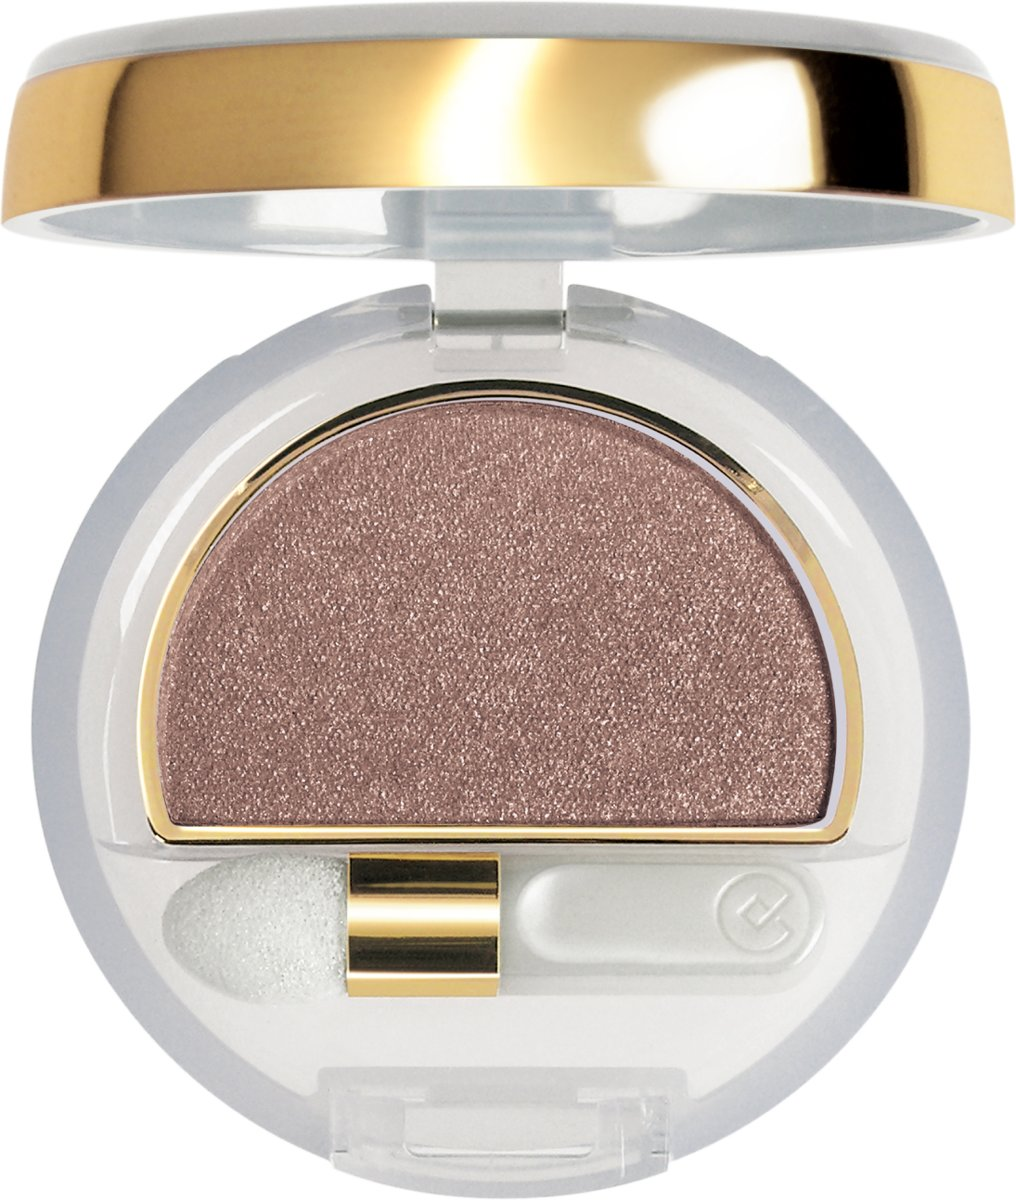 Collistar Silk Effect Eyeshadow - 68 Marron Glace - Oogschaduw